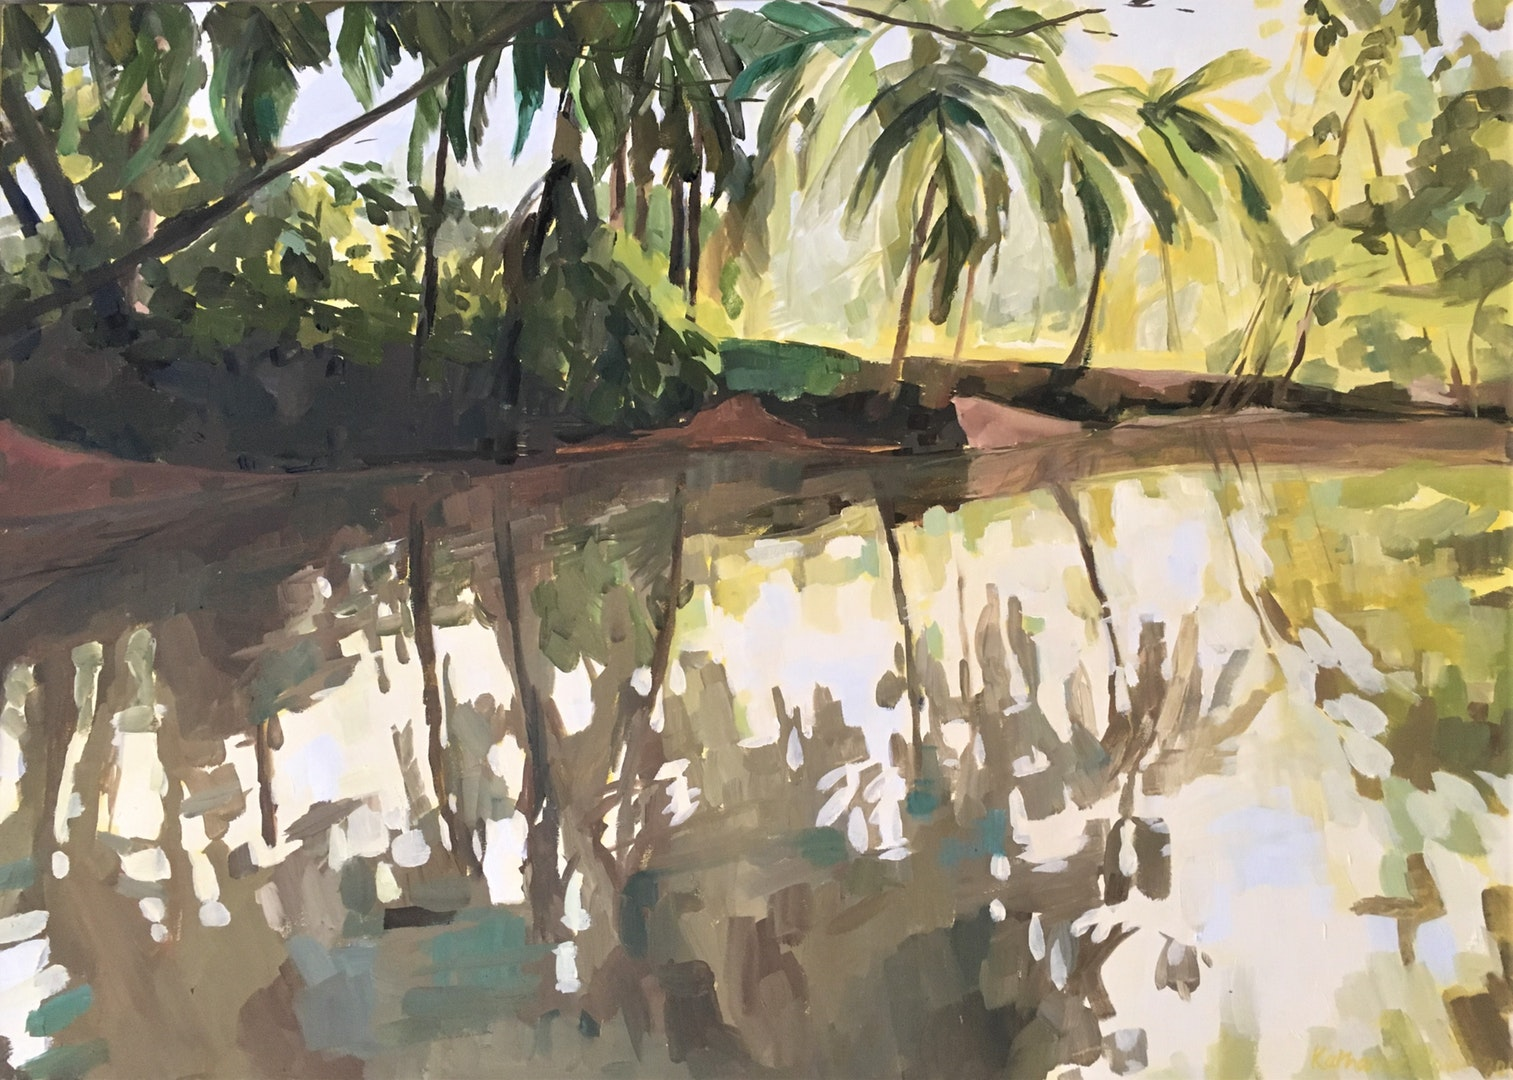 Katharine Rowe  Mangroves near Quepos, Costa Rica  Oil on canvas, 70 x 50 x 2 cm  http://www.katharinerowe.com